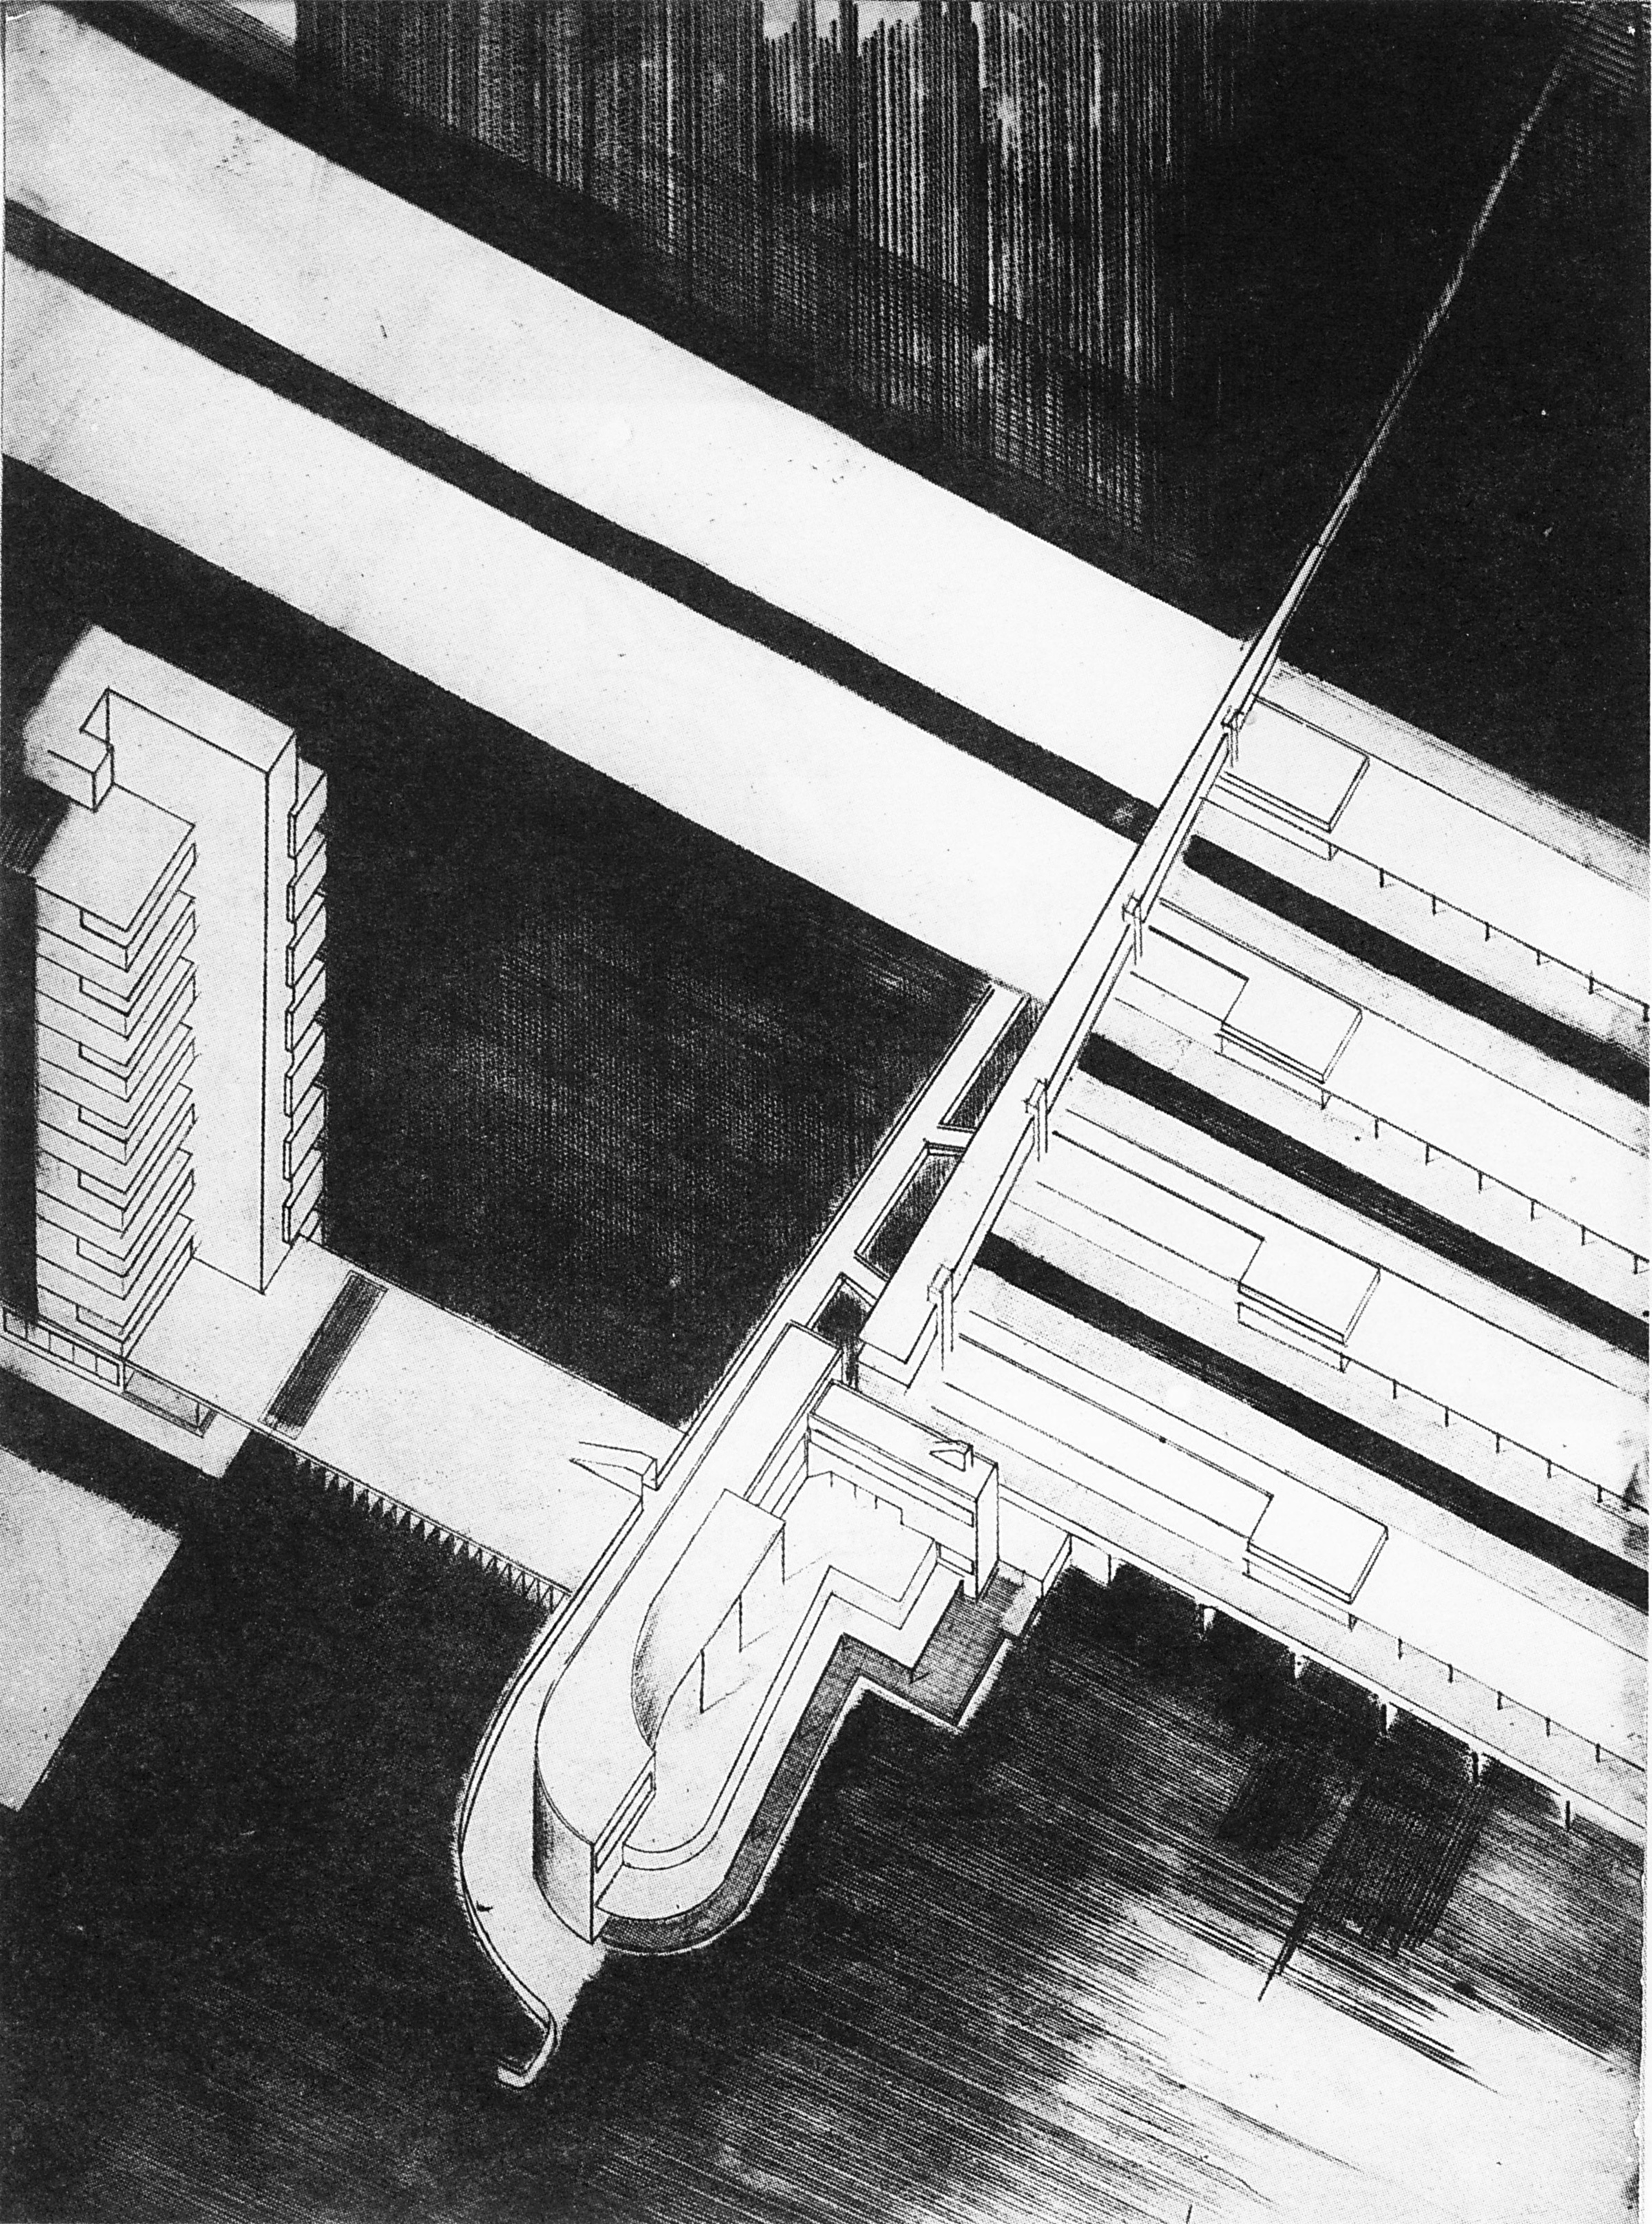 Author unknown, axonometric view of a train station in Saratov, 1929